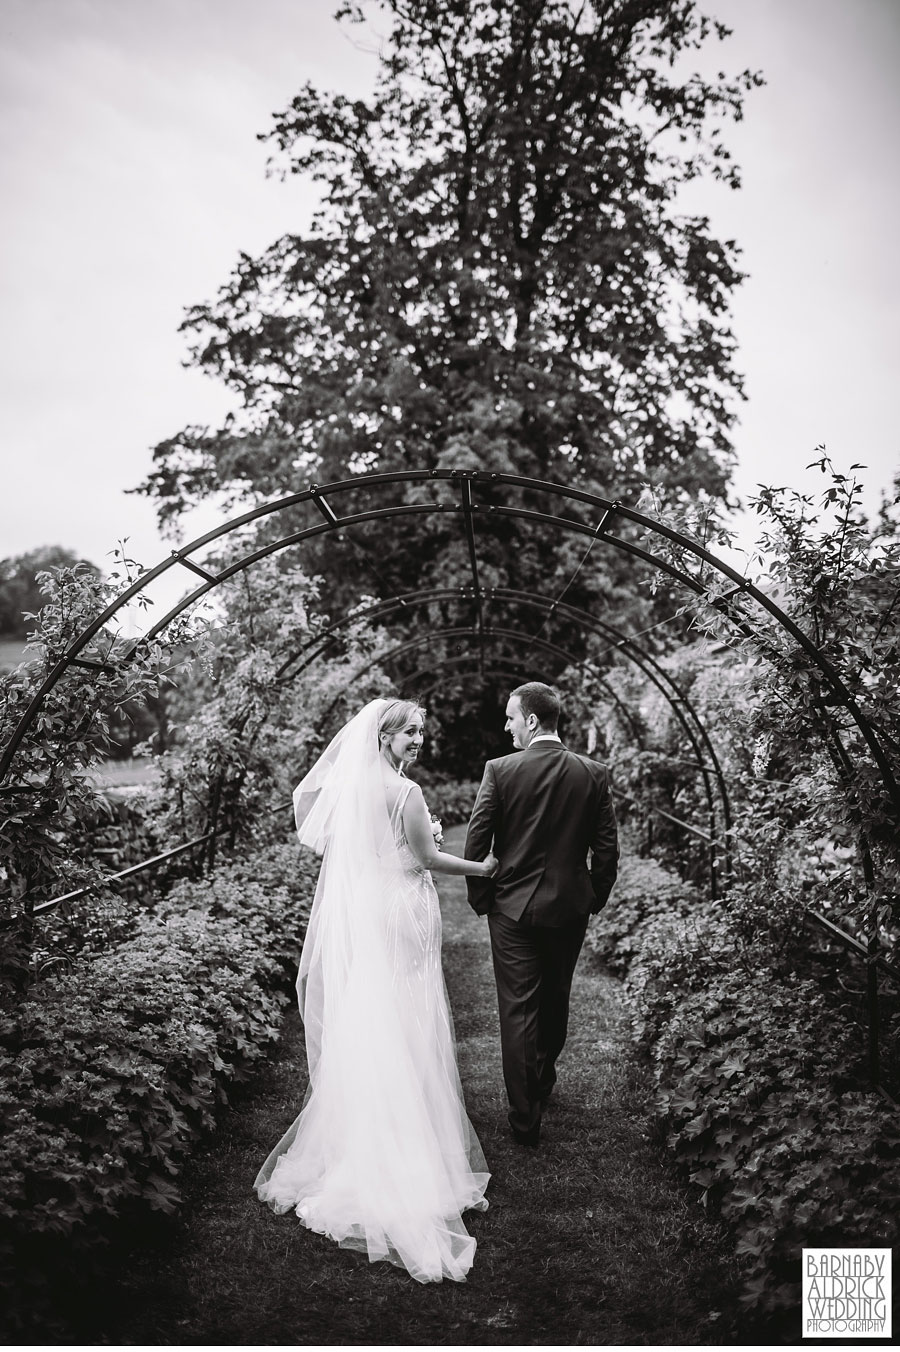 Taitlands Wedding Photography near Settle in The Yorkshire Dales 051